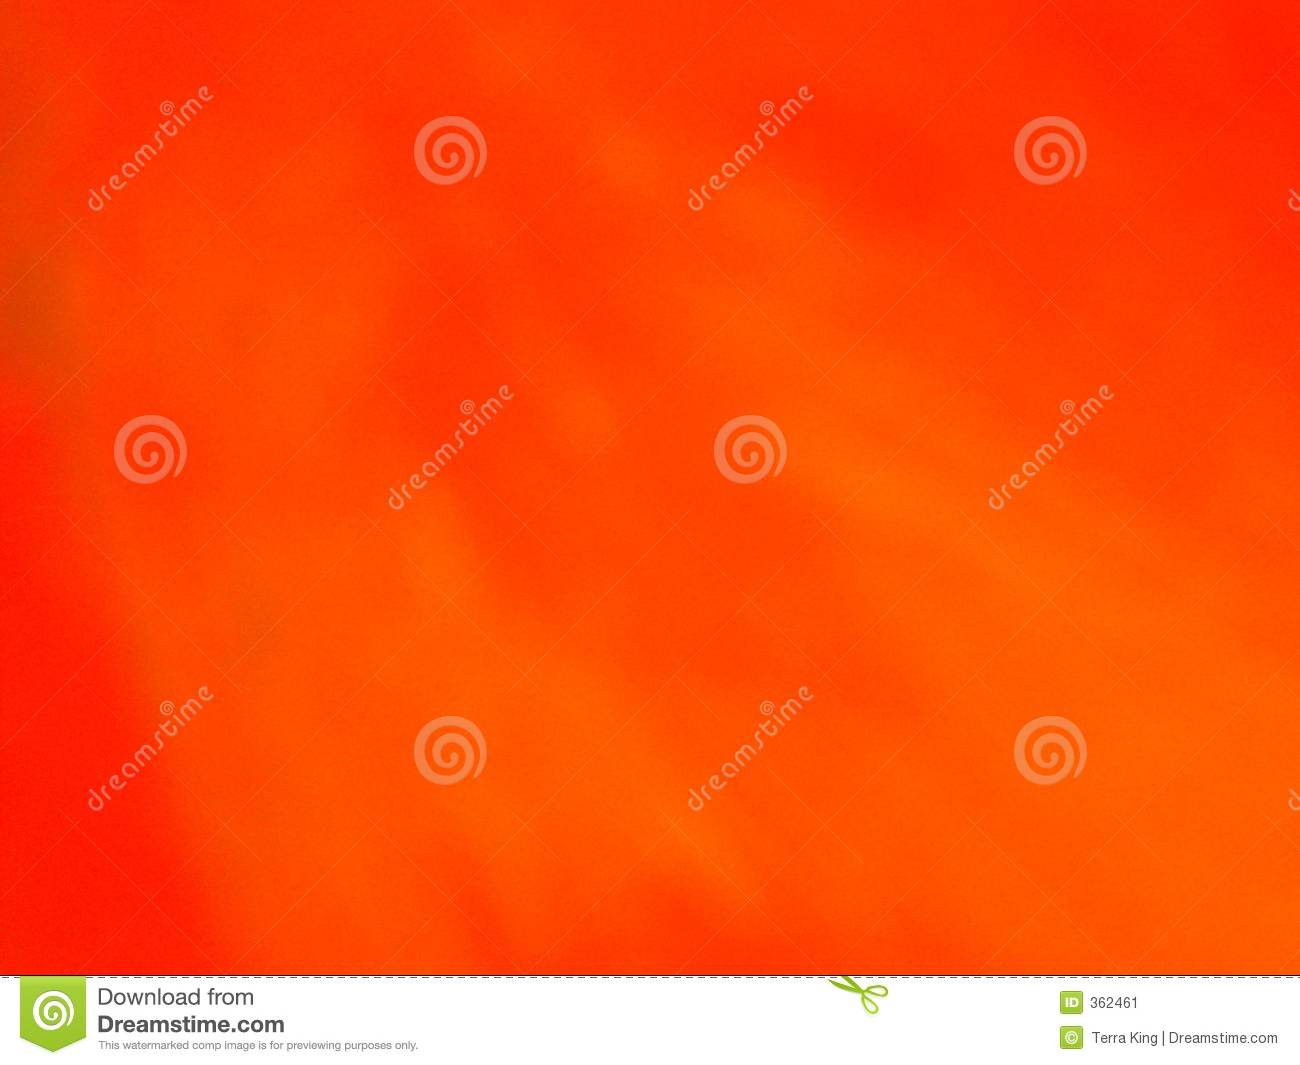 Solid orange with yelllow highlights background